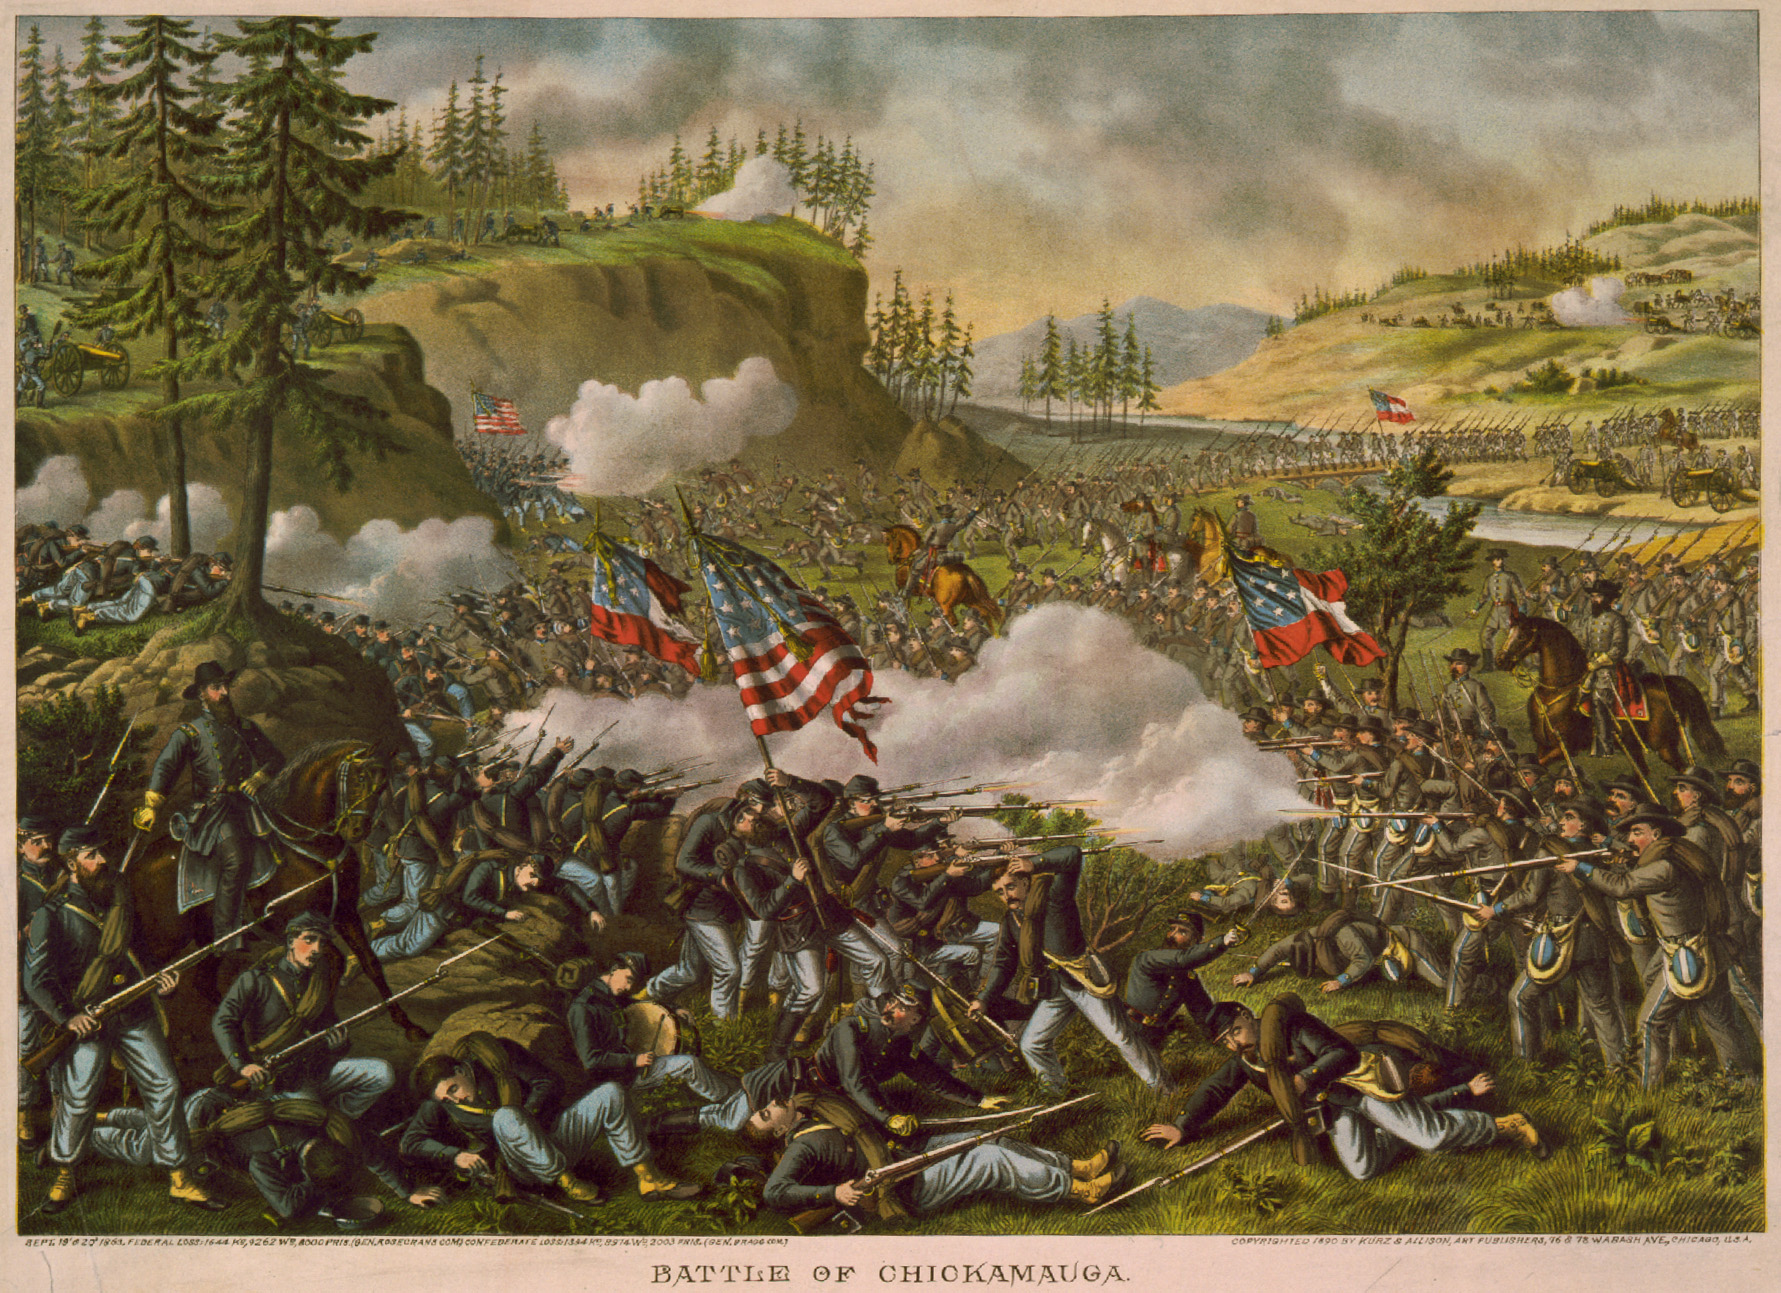 """Battle of Chickamauga"" By Kurz & Allison - Library of Congress, Public Domain, https://commons.wikimedia.org/w/index.php?curid=1484303"